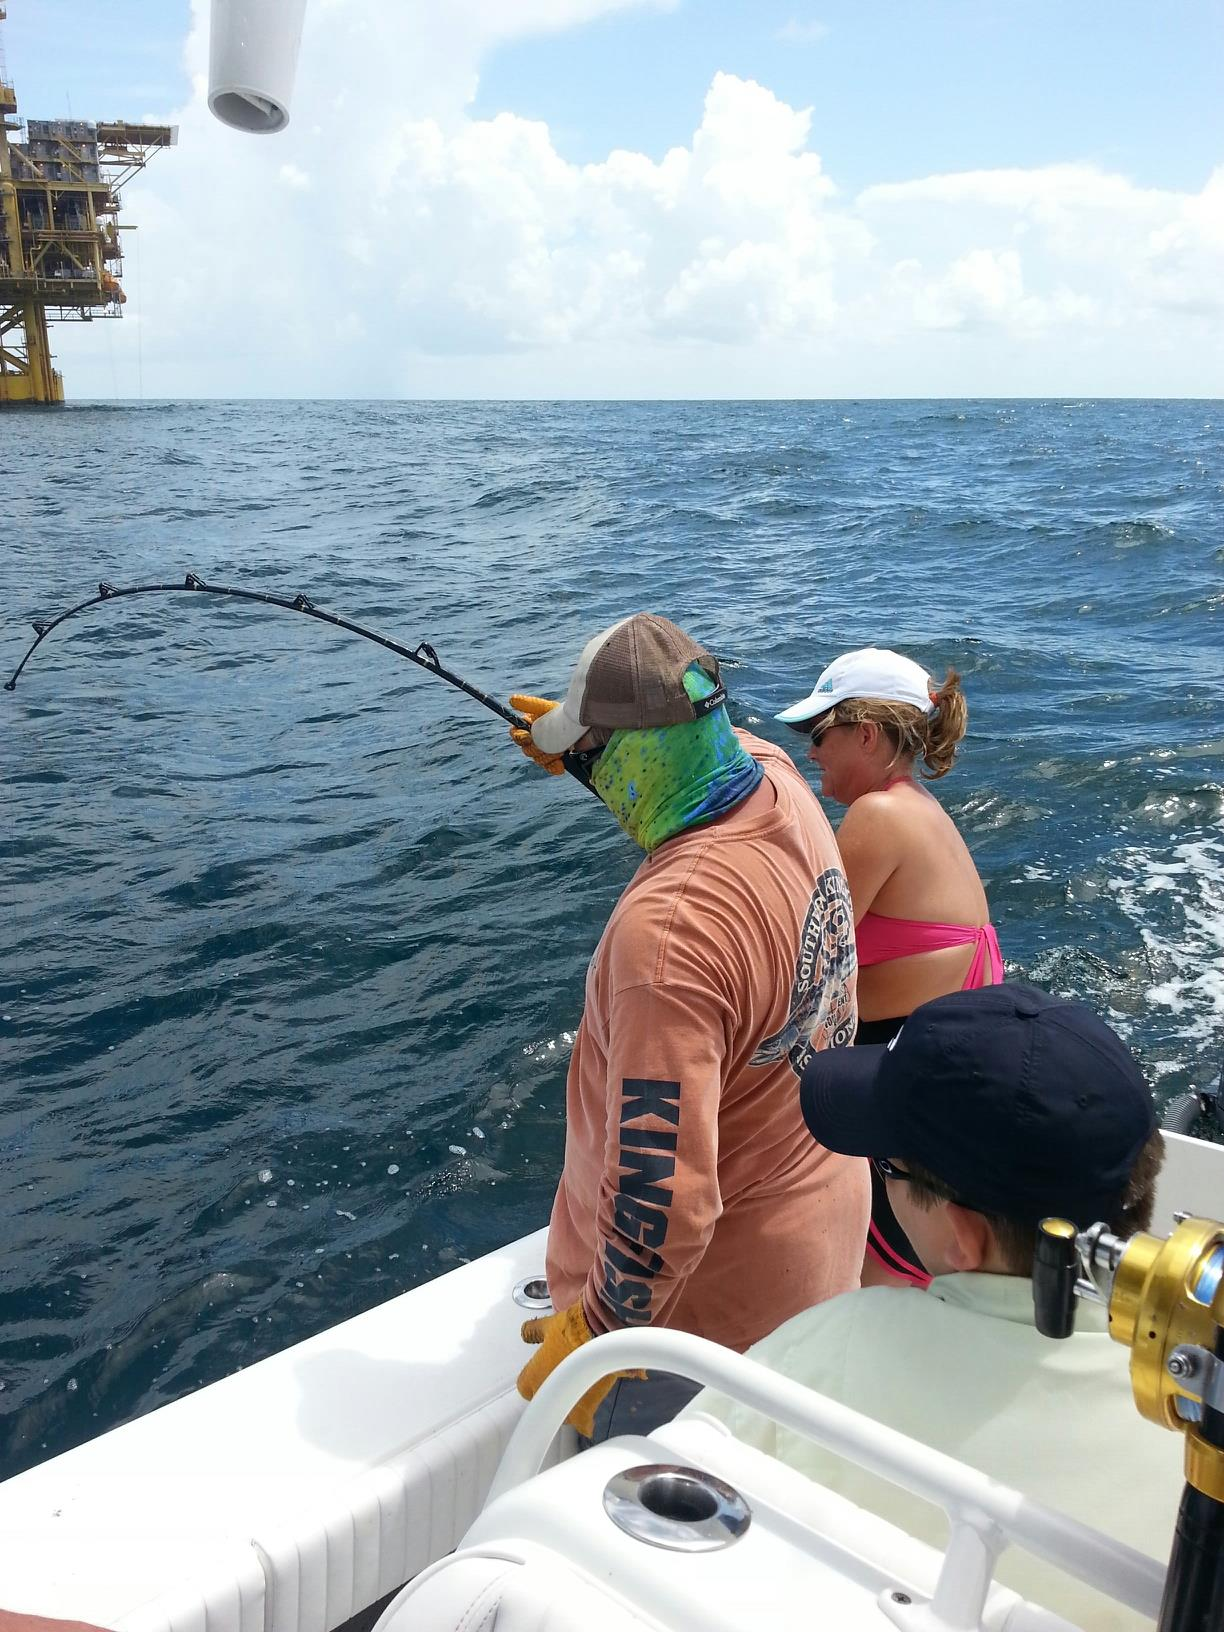 offshore-fishing-on-36-foot-boat-15690409491324097041